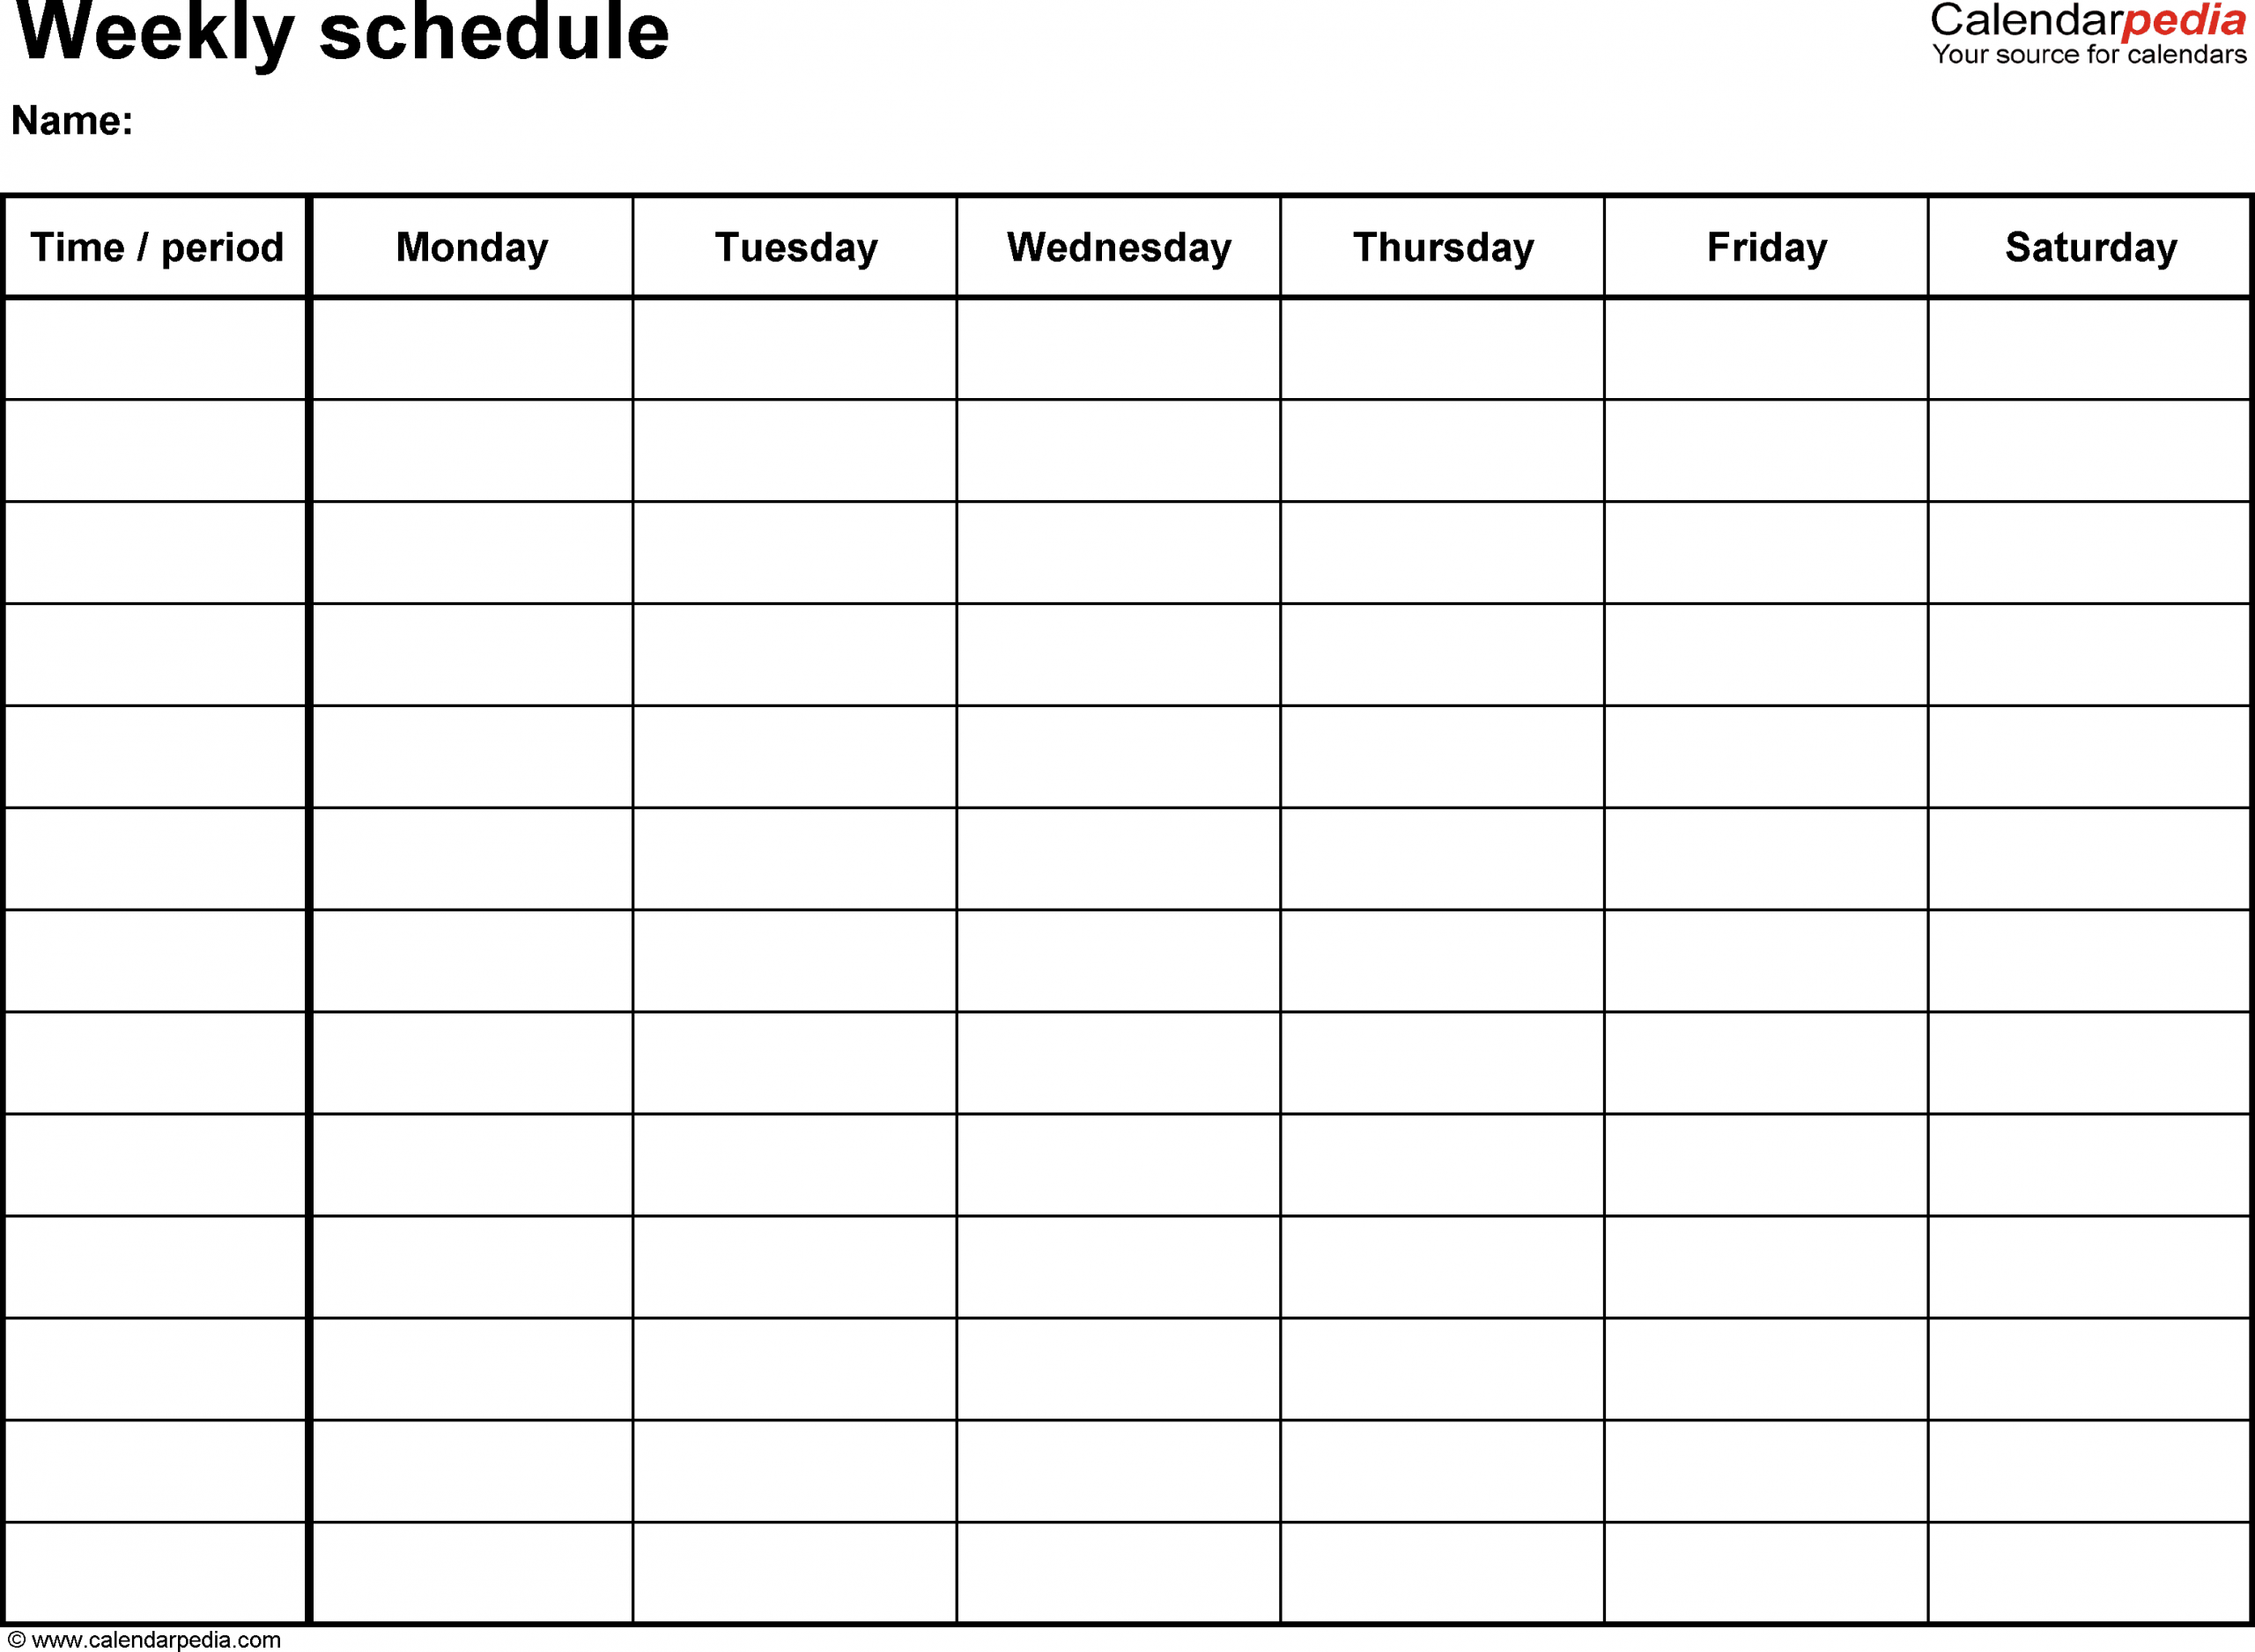 Weekly Schedule Template For Word Version 8: Landscape, 1 One Week Monday Through Saturday Communication Calendar